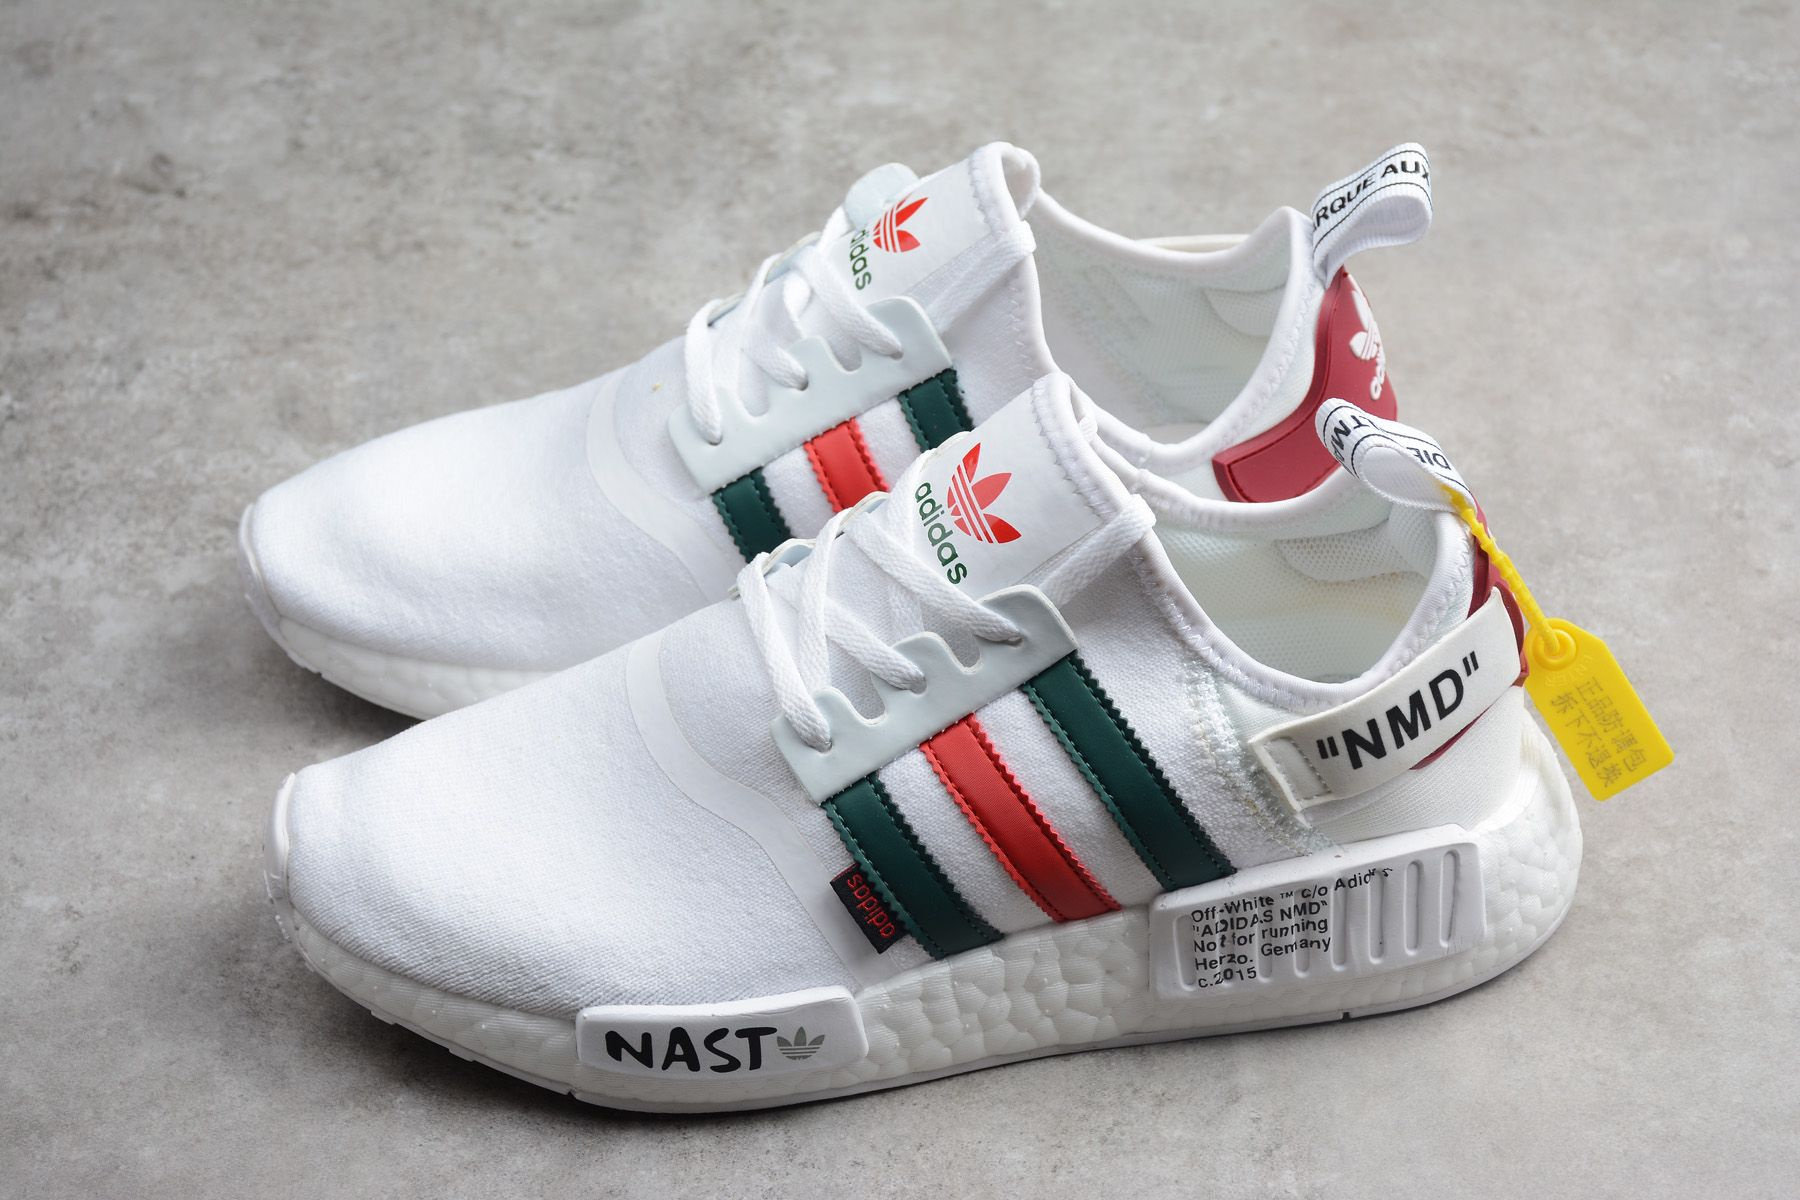 Off White X Adidas Nmd R1 White Black Green Red New Release